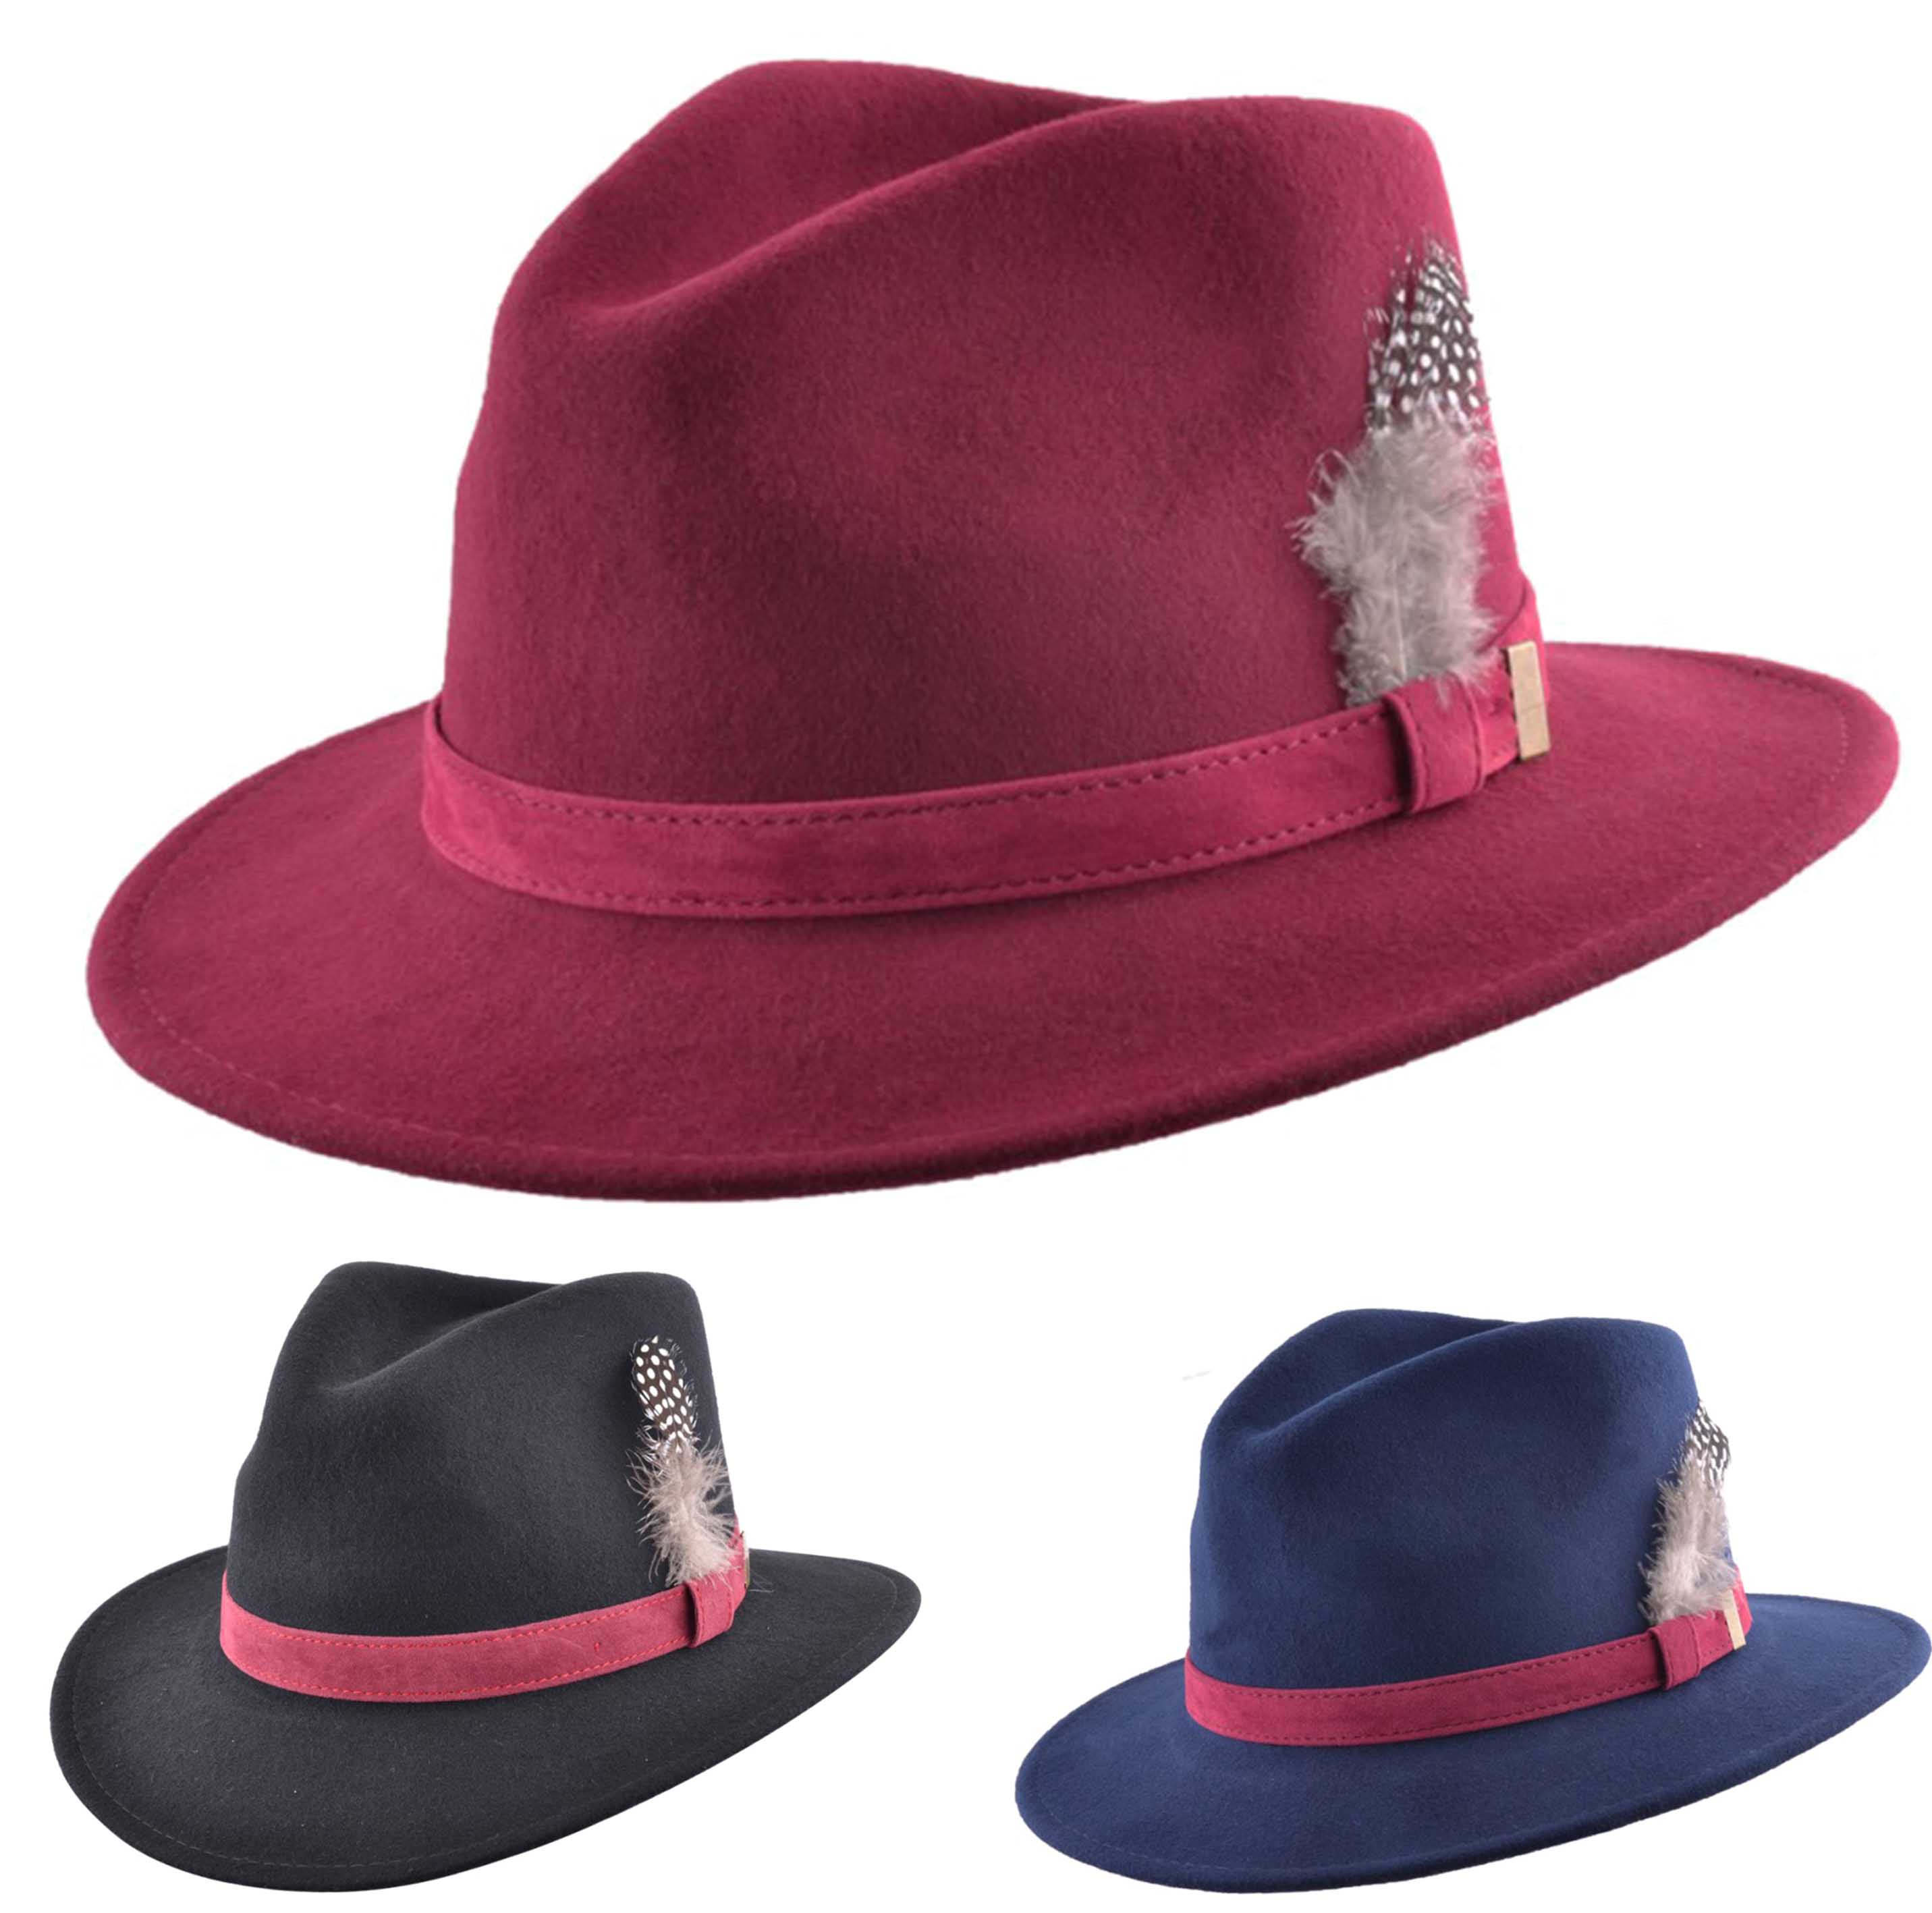 731b9c9b805d1 Details about Mens Ladies 100% Wool Felt Crushable Fedora Trilby Hat  Feather Black Navy Wine